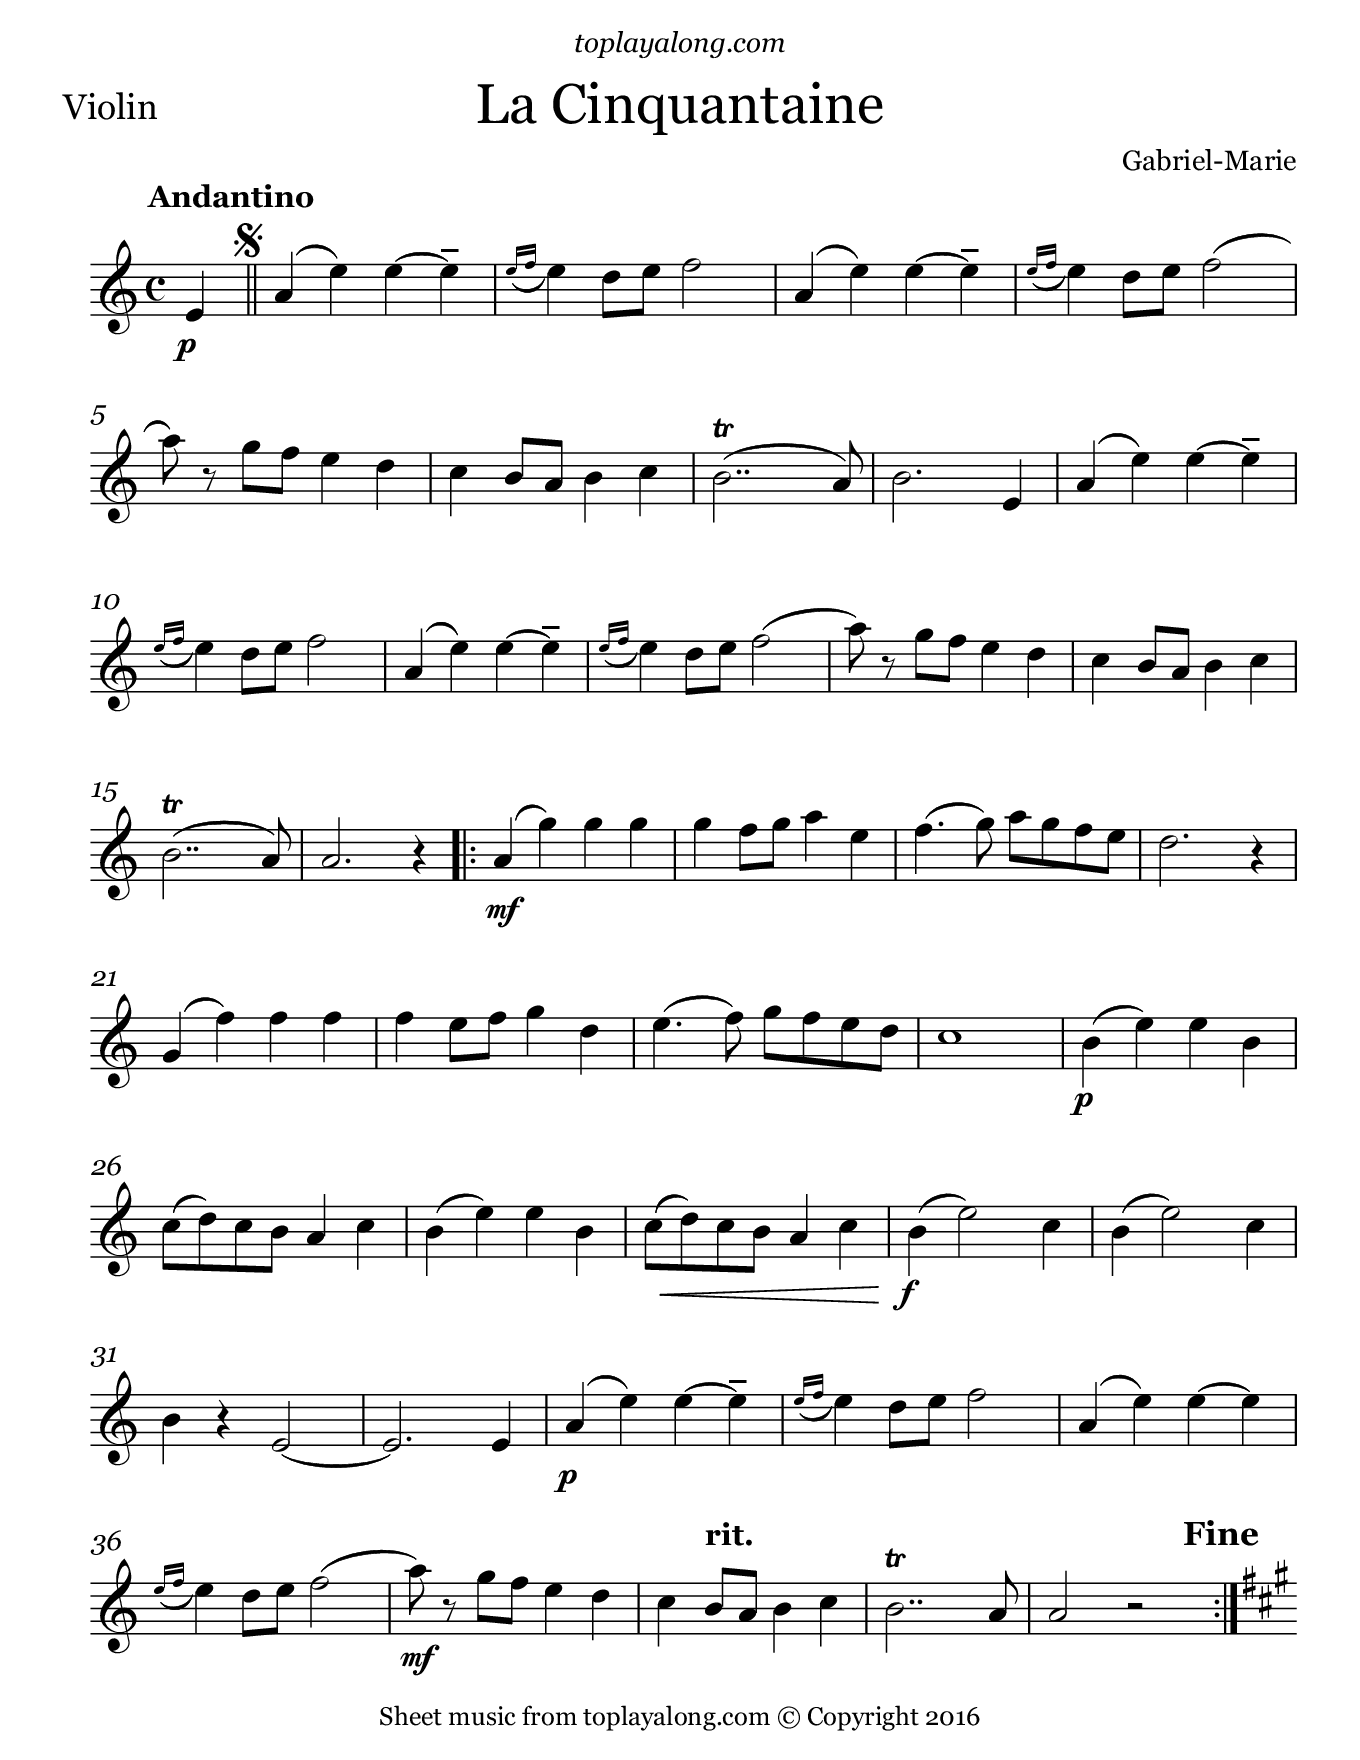 La cinquantaine by gabriel marie free sheet music for violin visit toplayalong